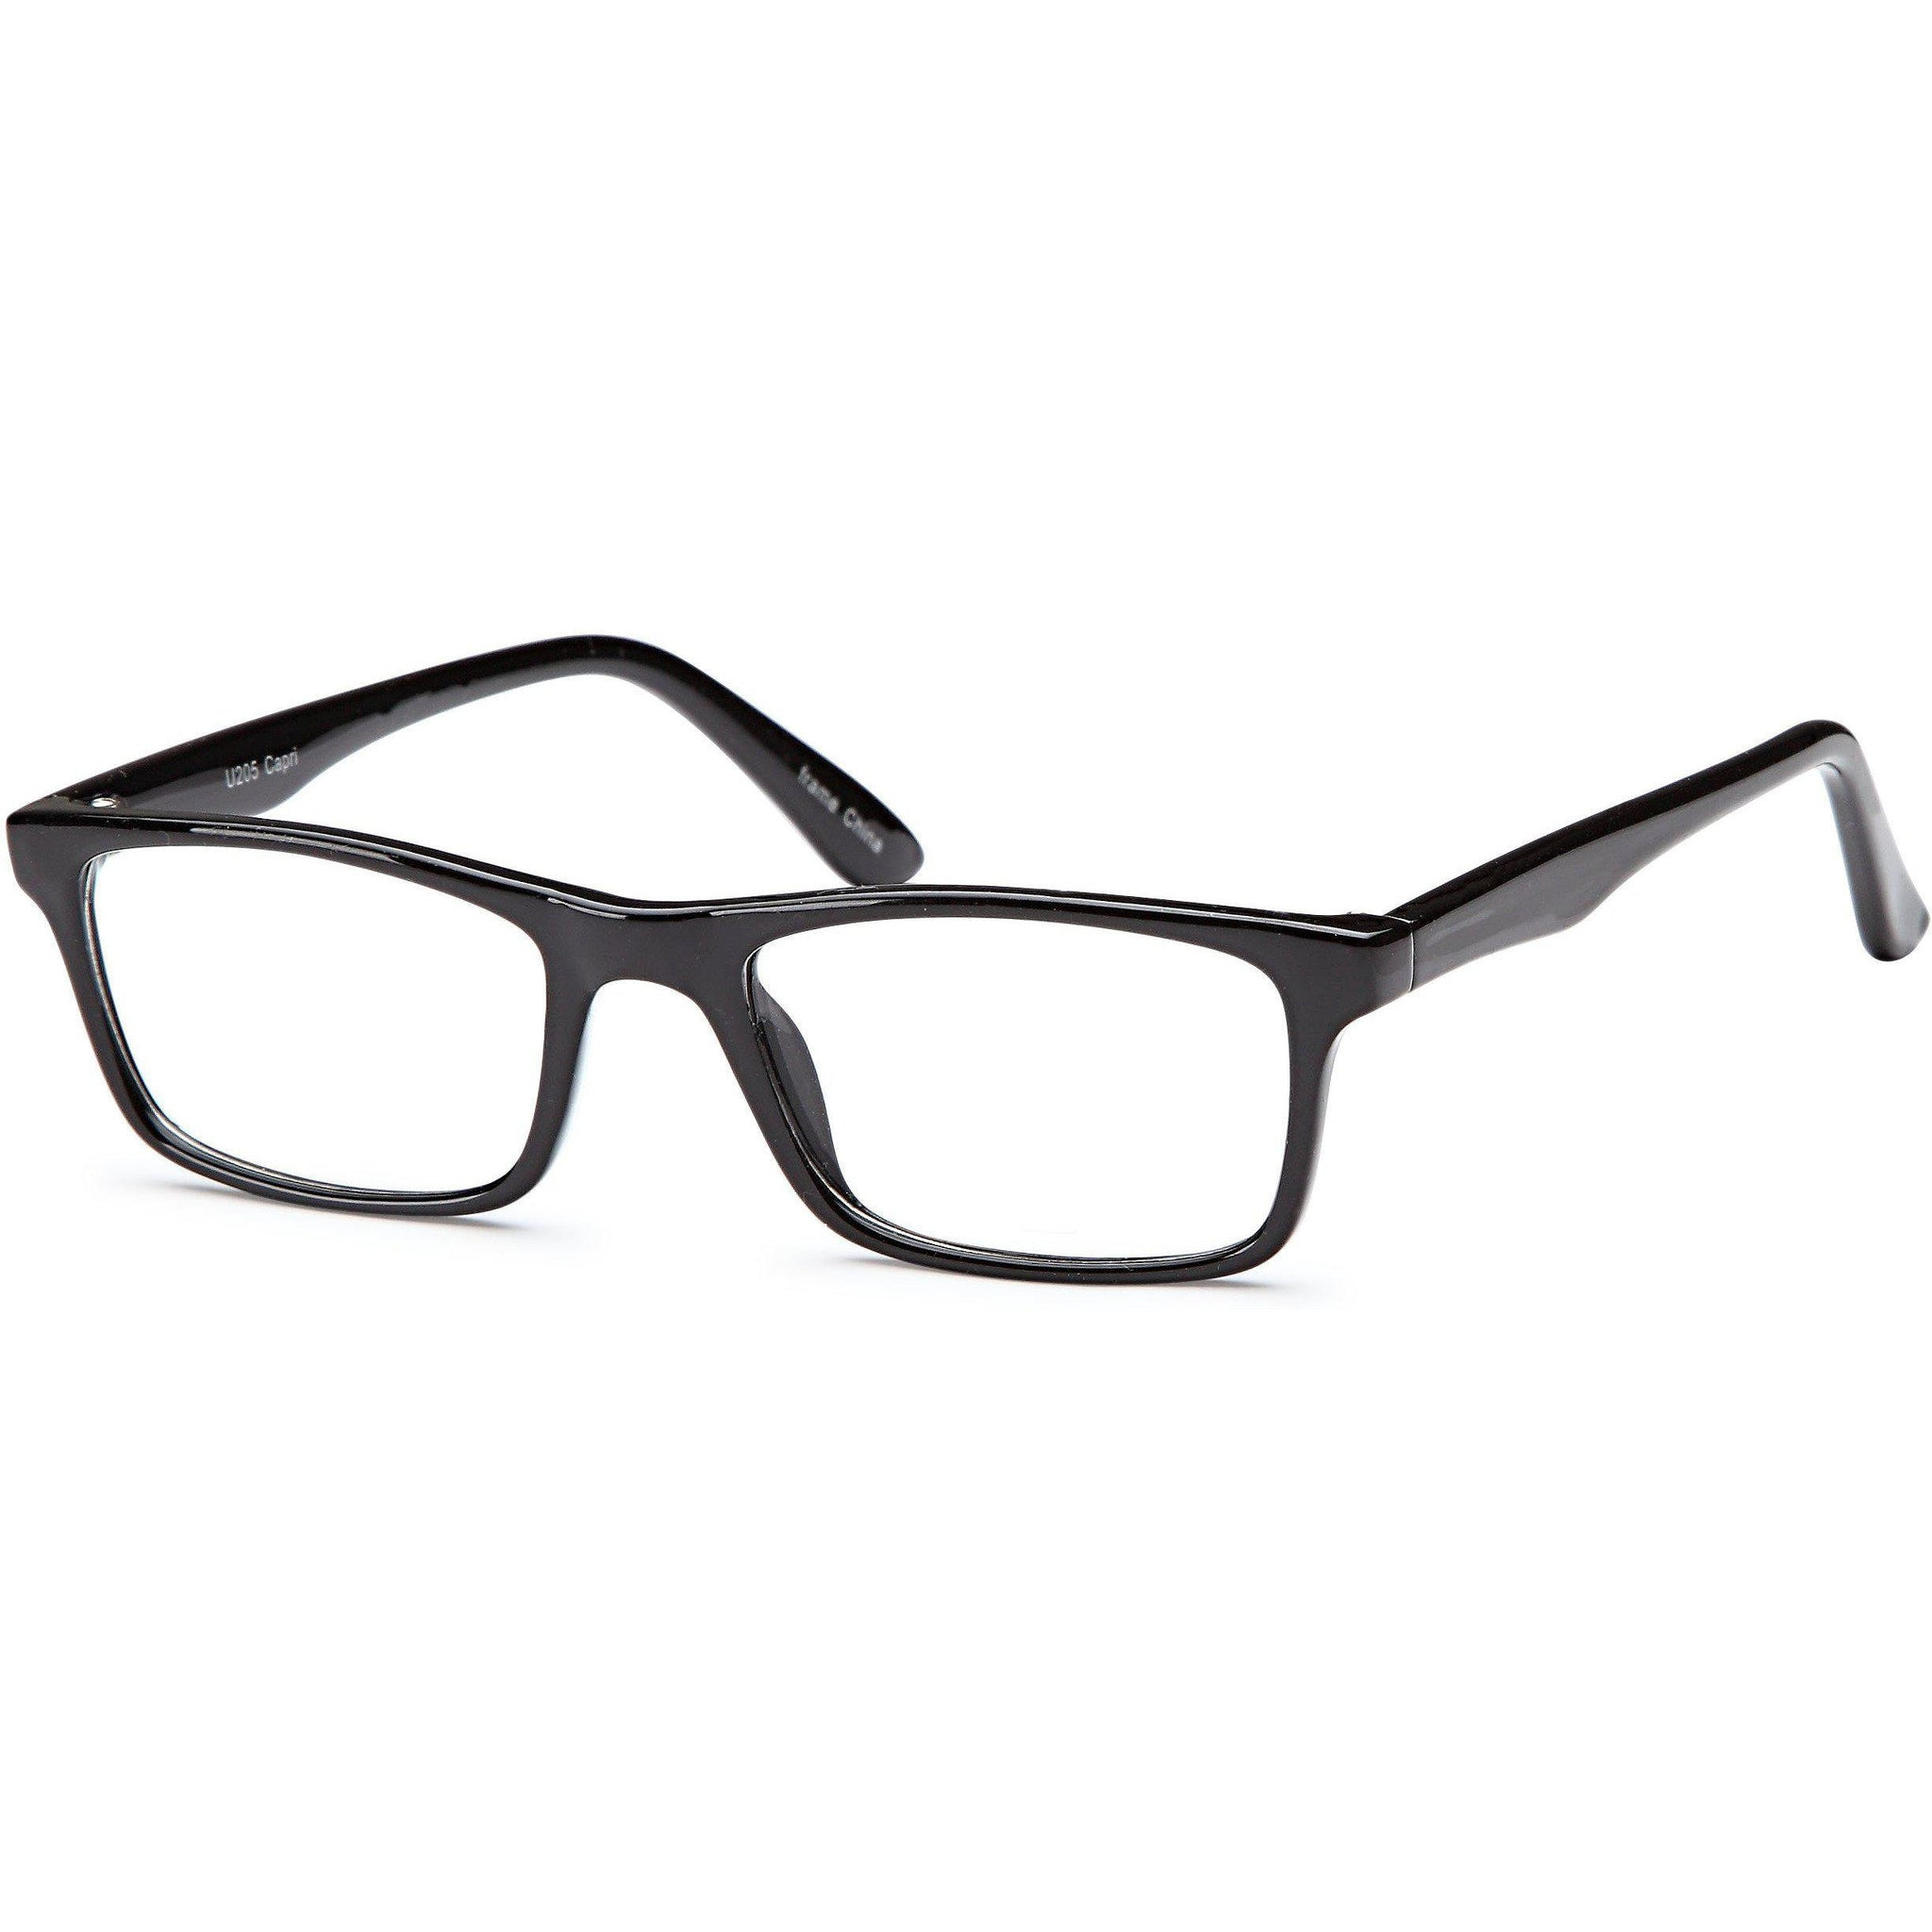 4U Prescription Glasses U 205 Optical Eyeglasses Frame - timetoshade